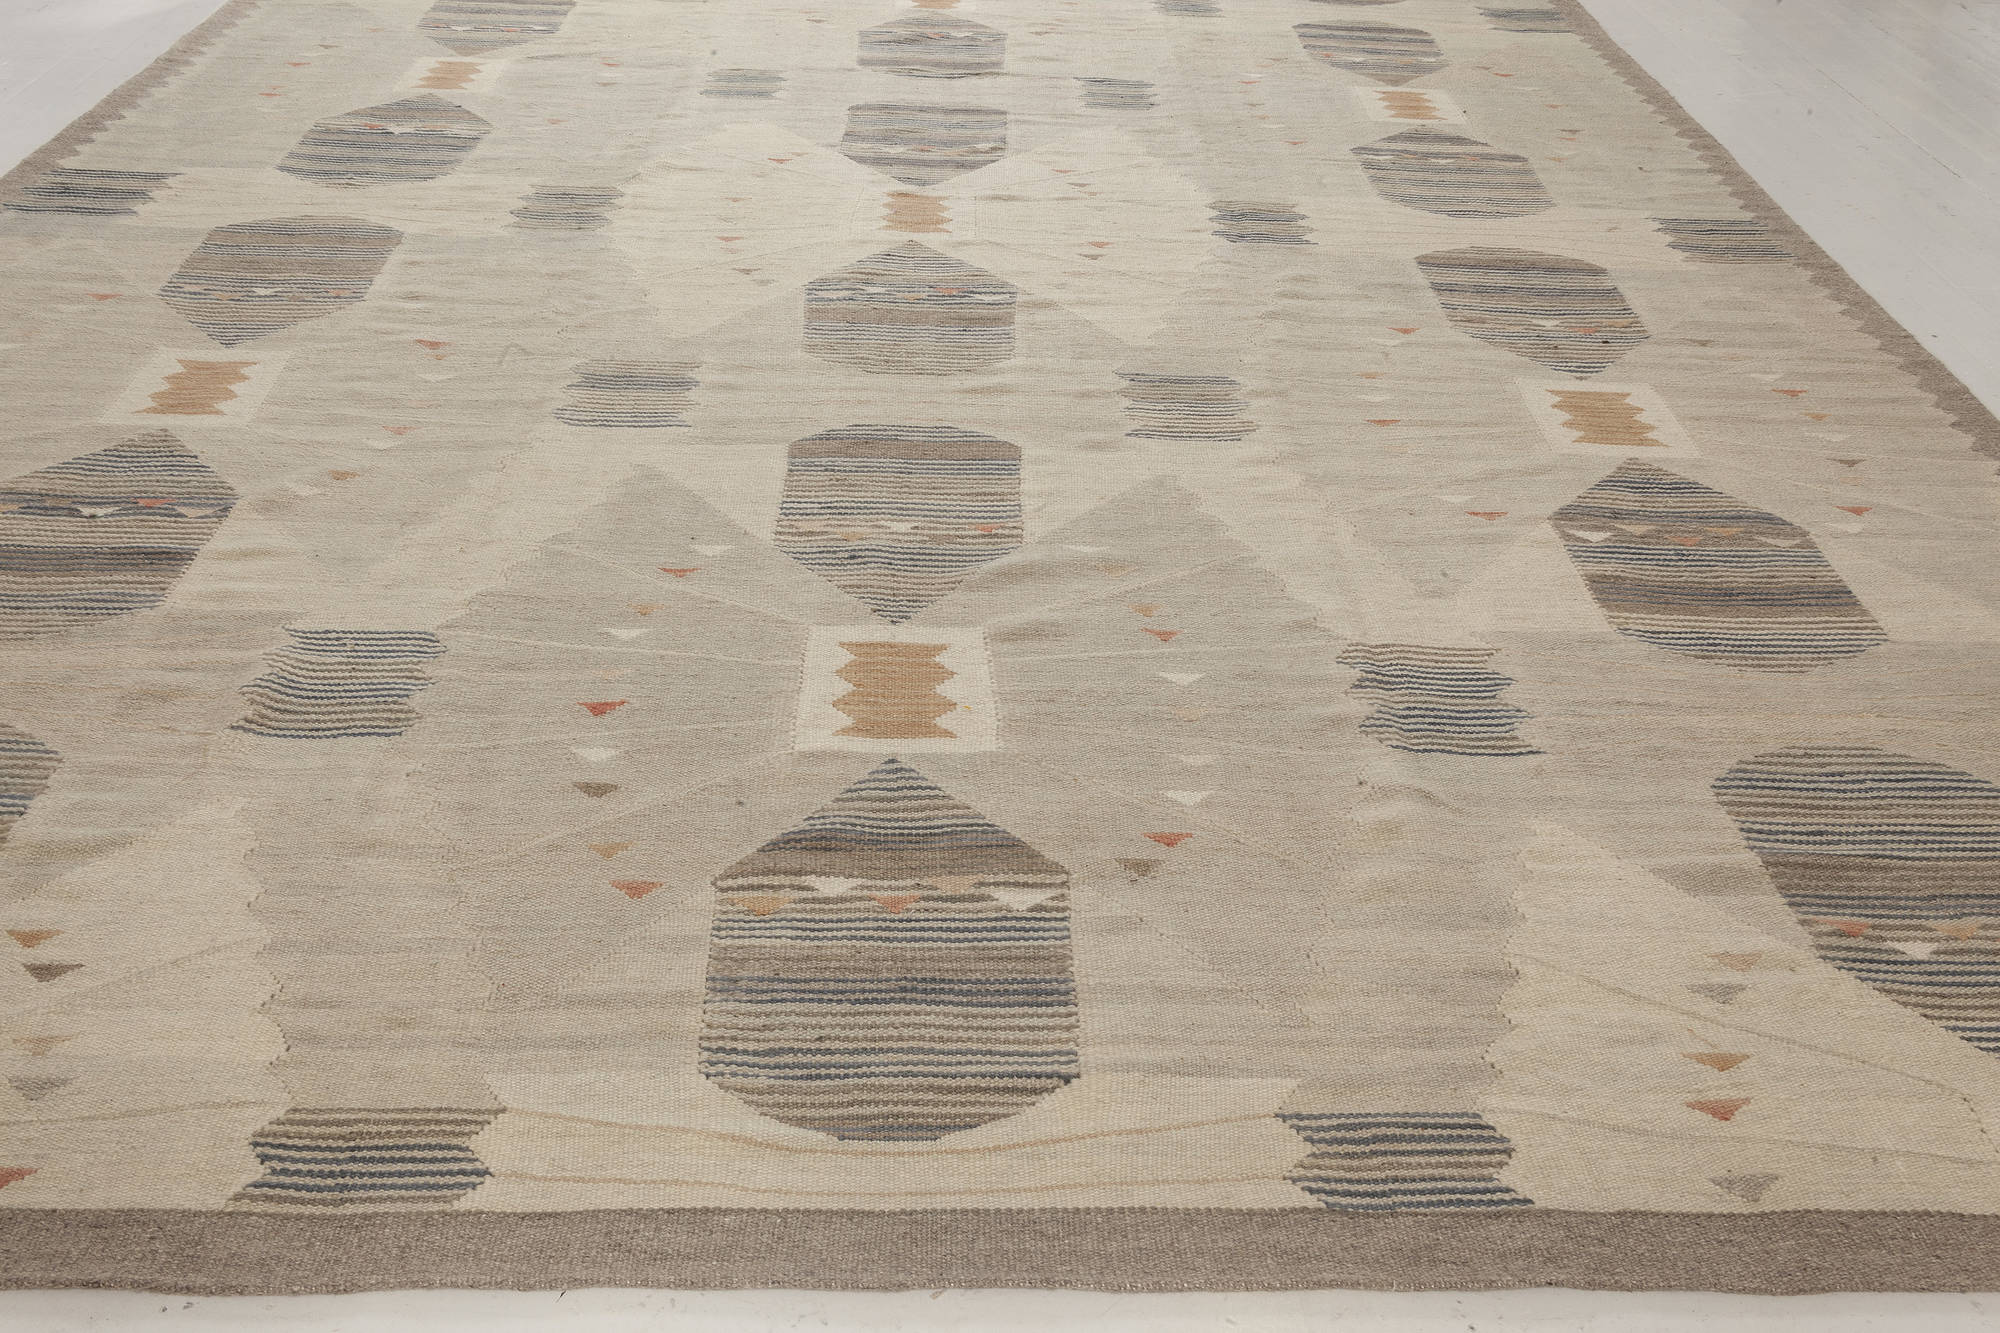 Swedish Design Rug N11980 By Doris Leslie Blau